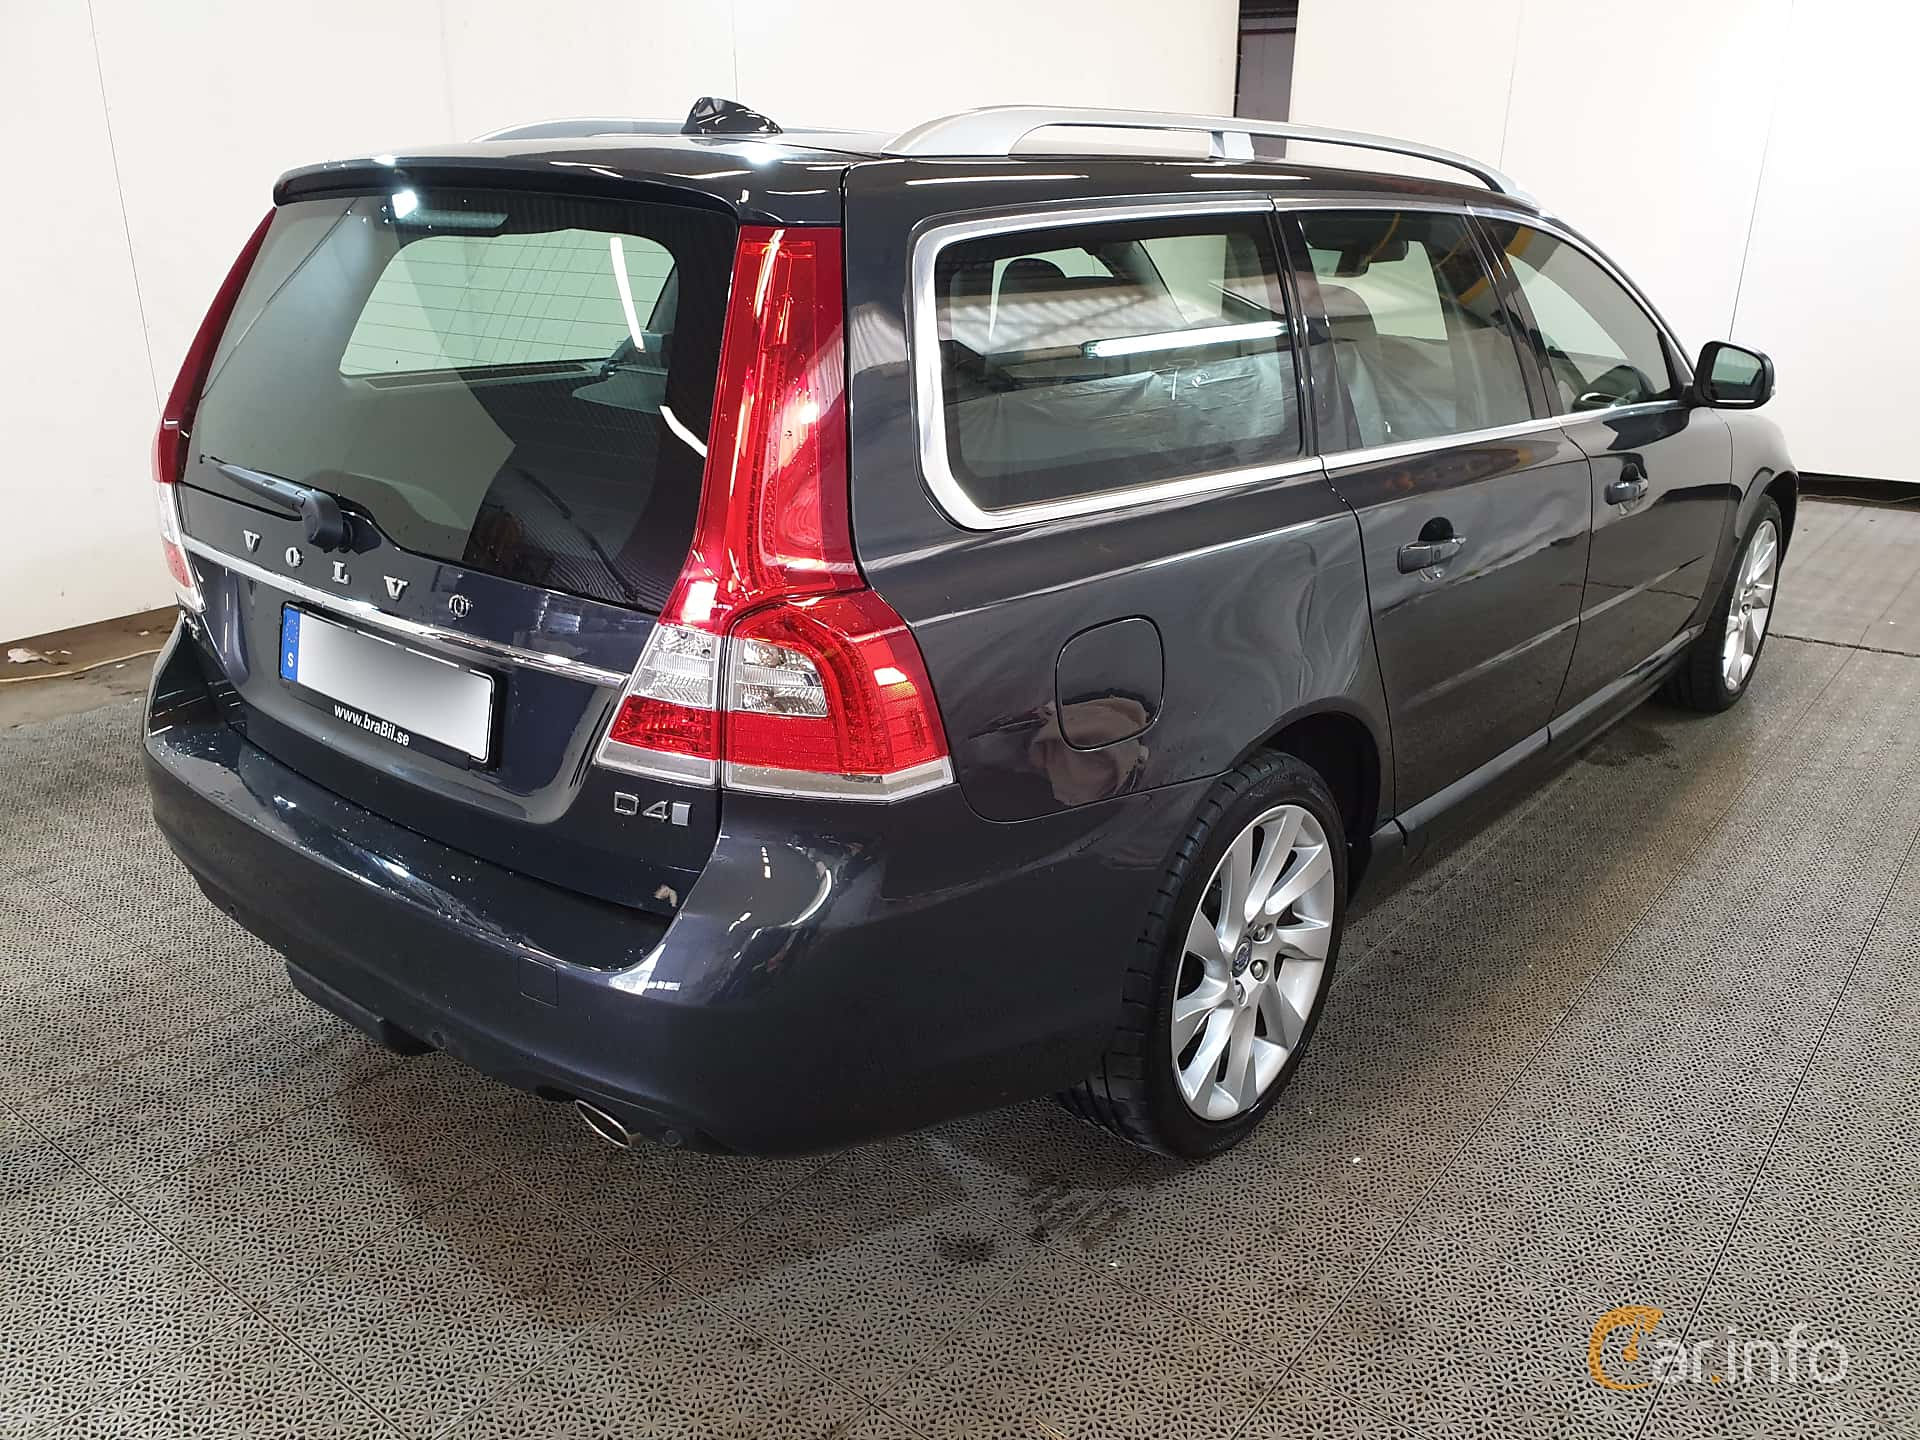 Volvo V70 D4 Manual, 181hp, 2016